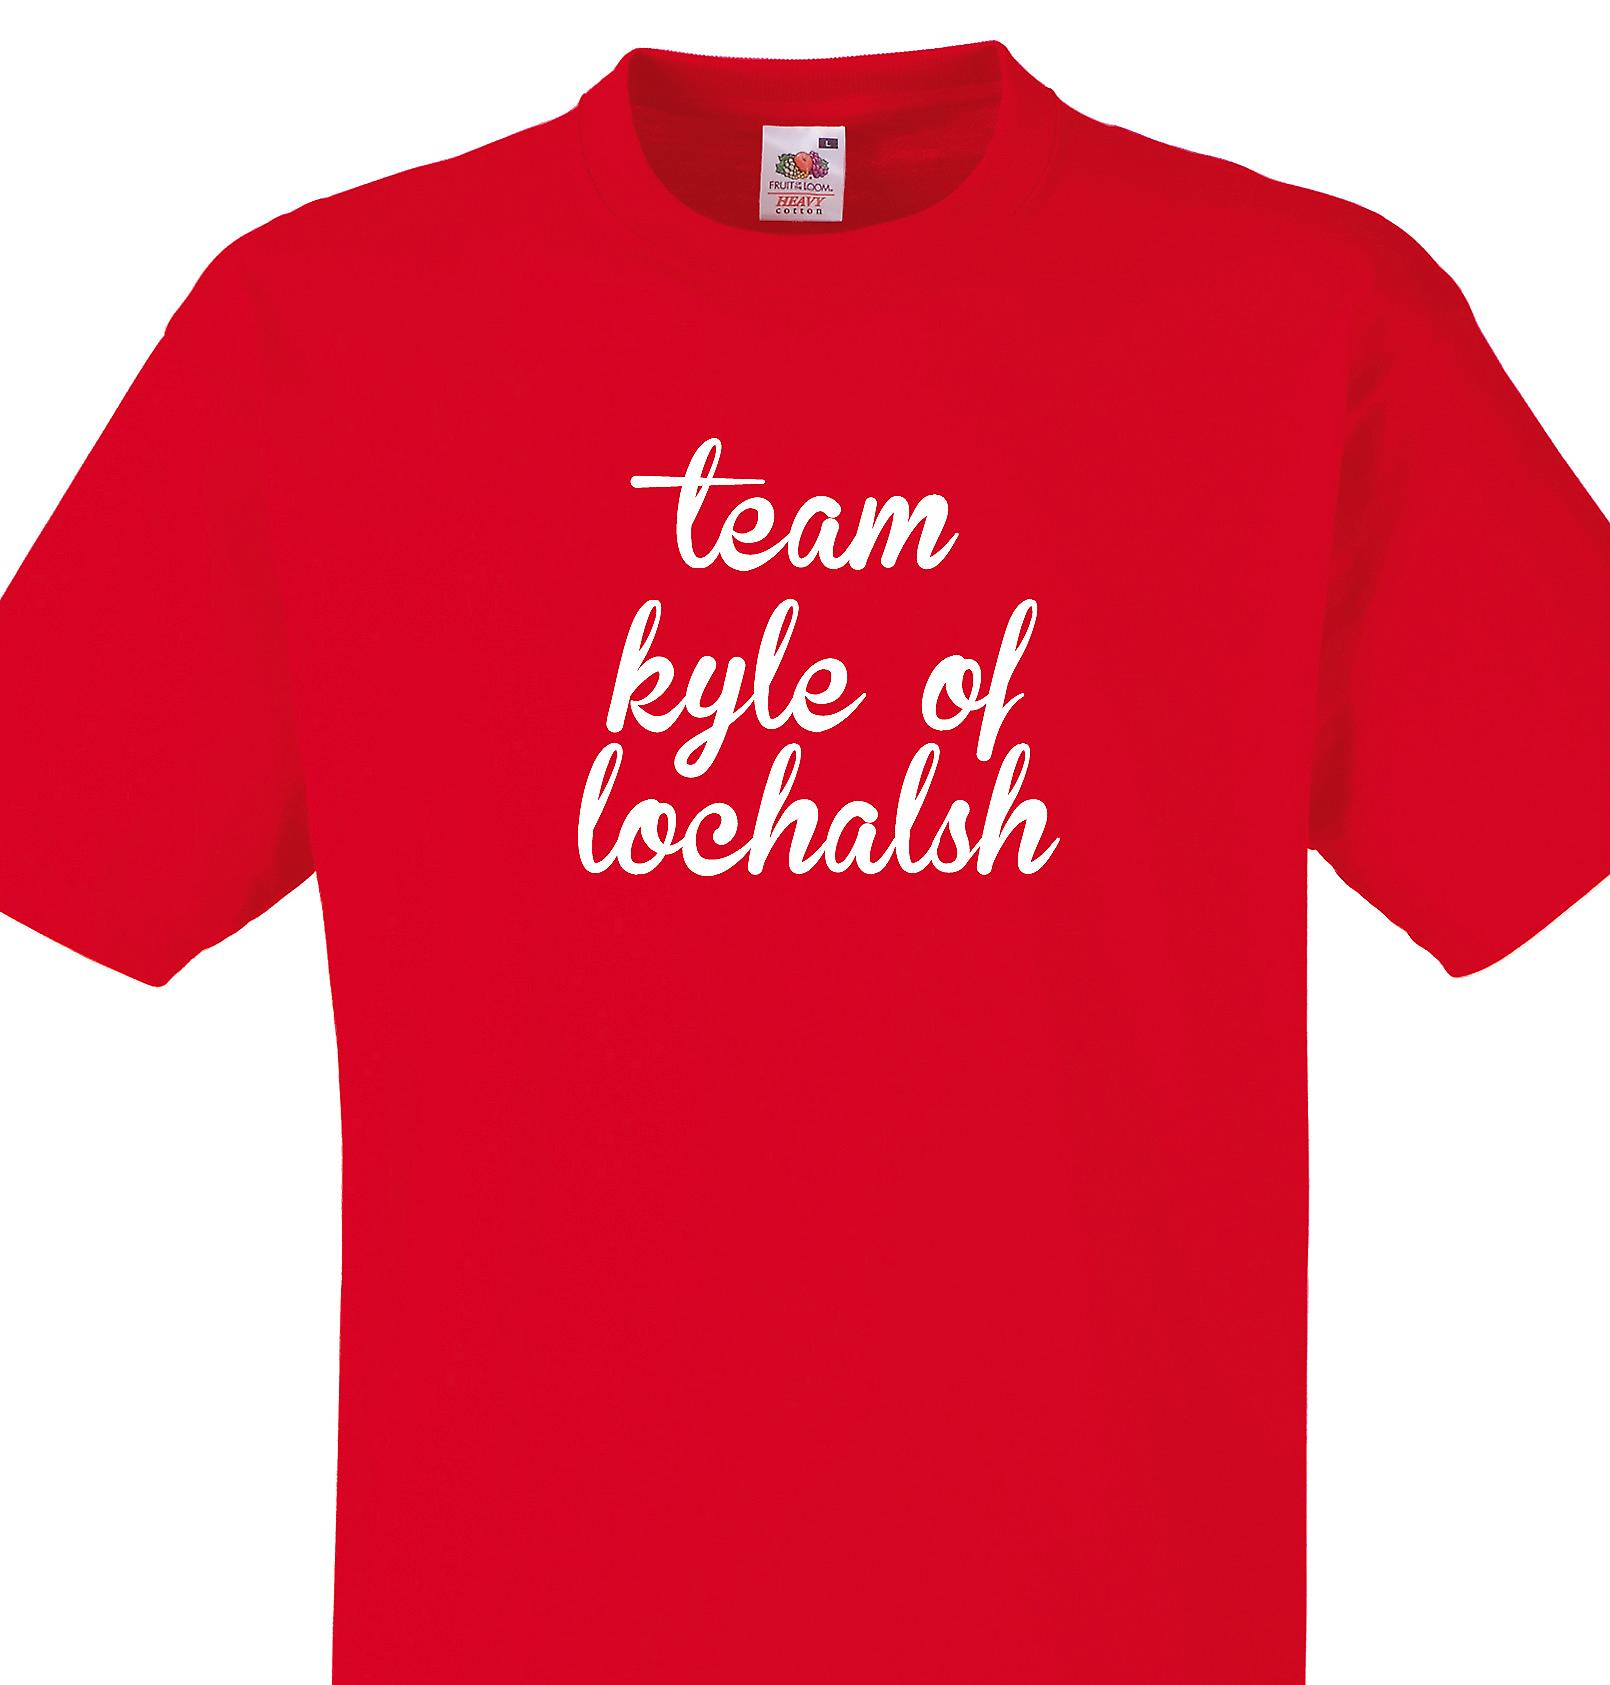 Team Kyle of lochalsh Red T shirt